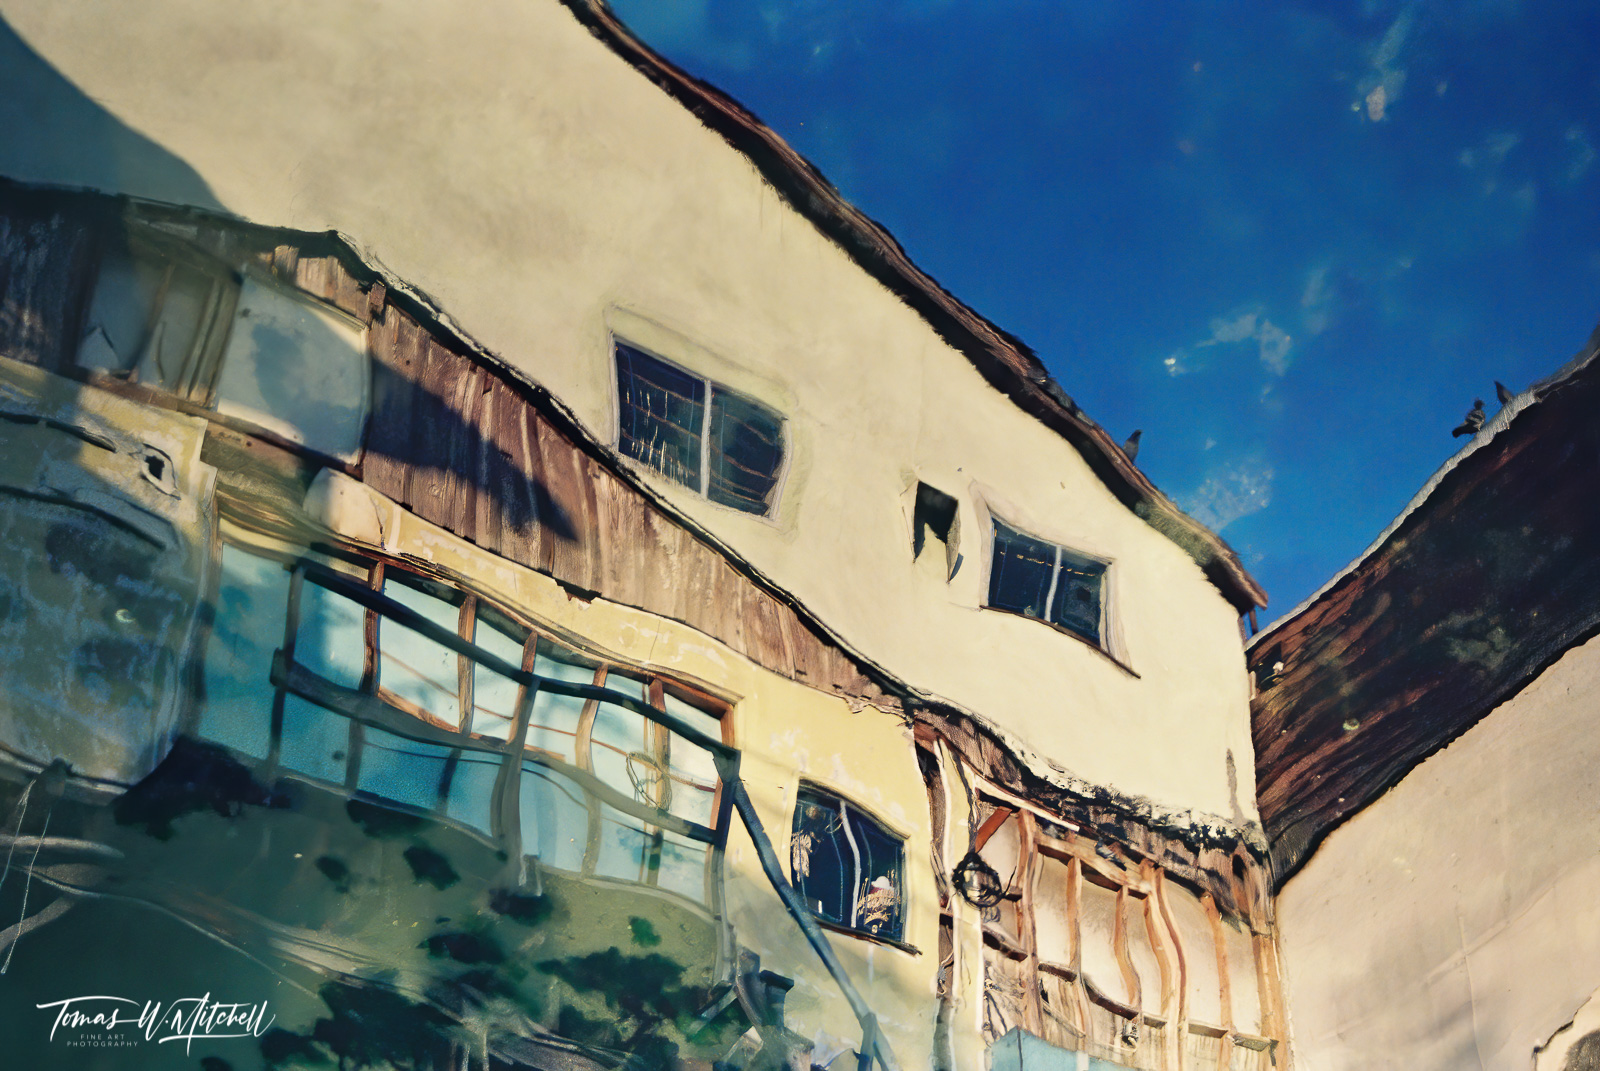 limited edition, fine art, prints, photograph, film, abstract, reflection, old building, old fisherman's wharf, monterey, california, water, sky, photo